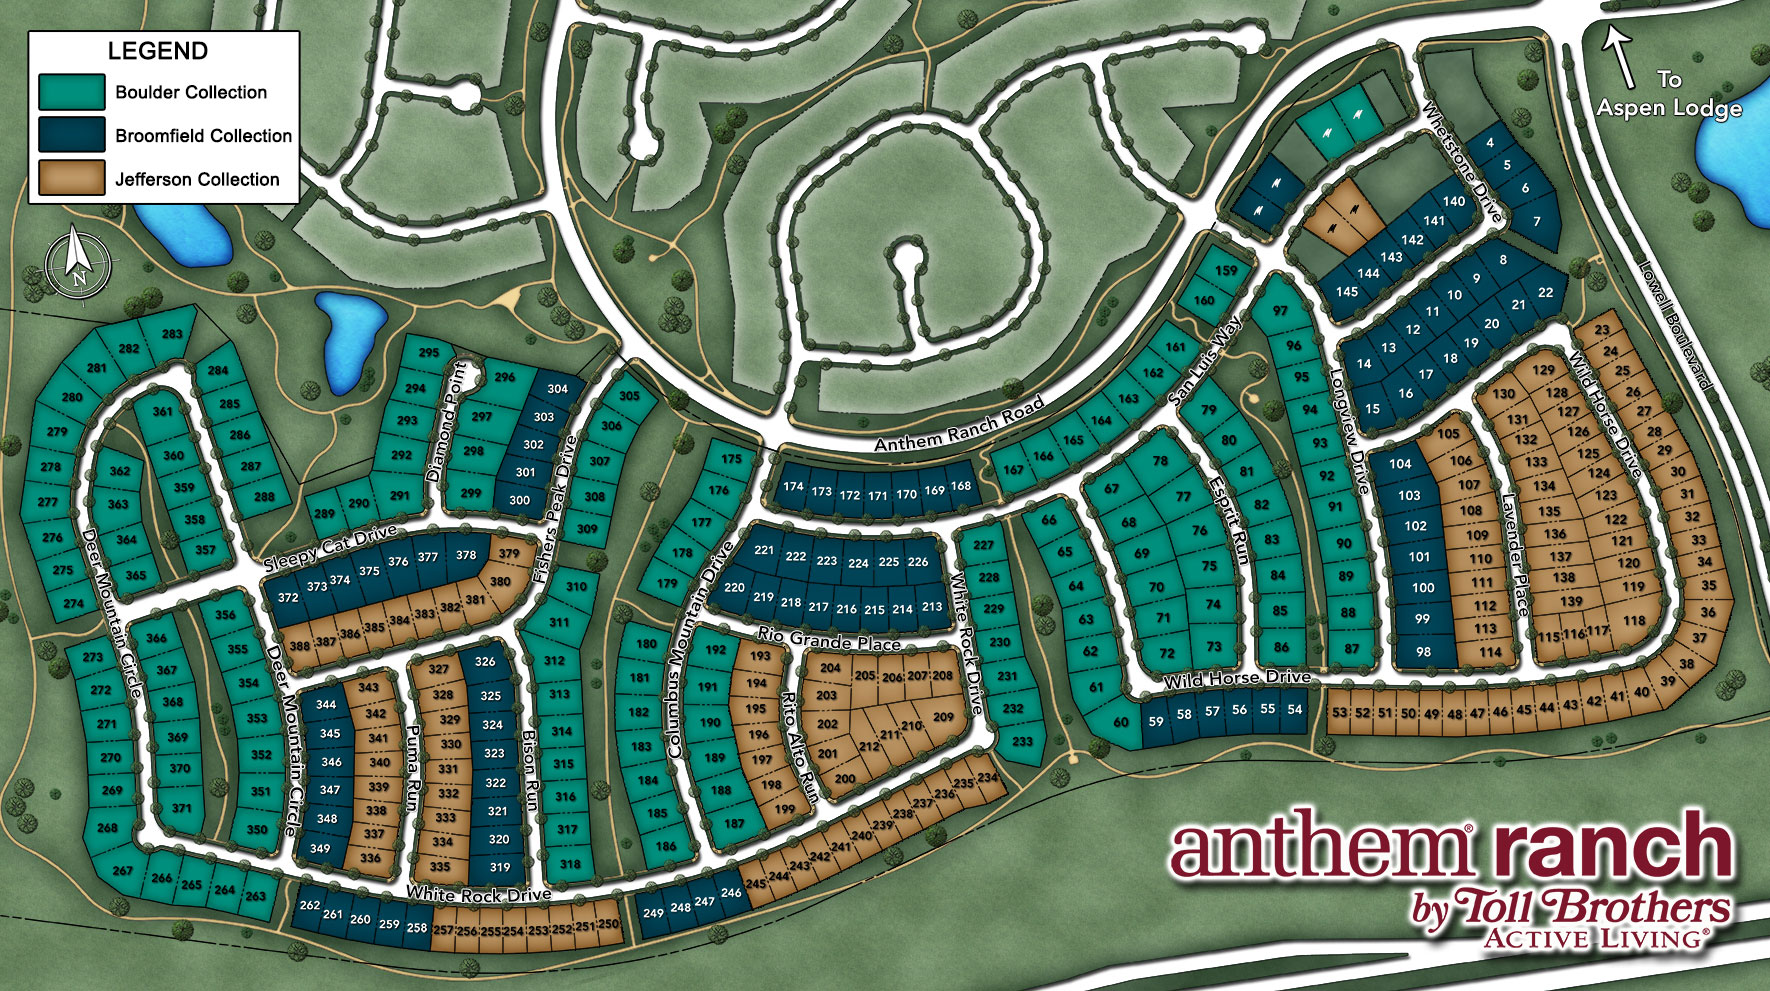 Anthem Ranch by Toll Brothers - Boulder Collection Site Plan